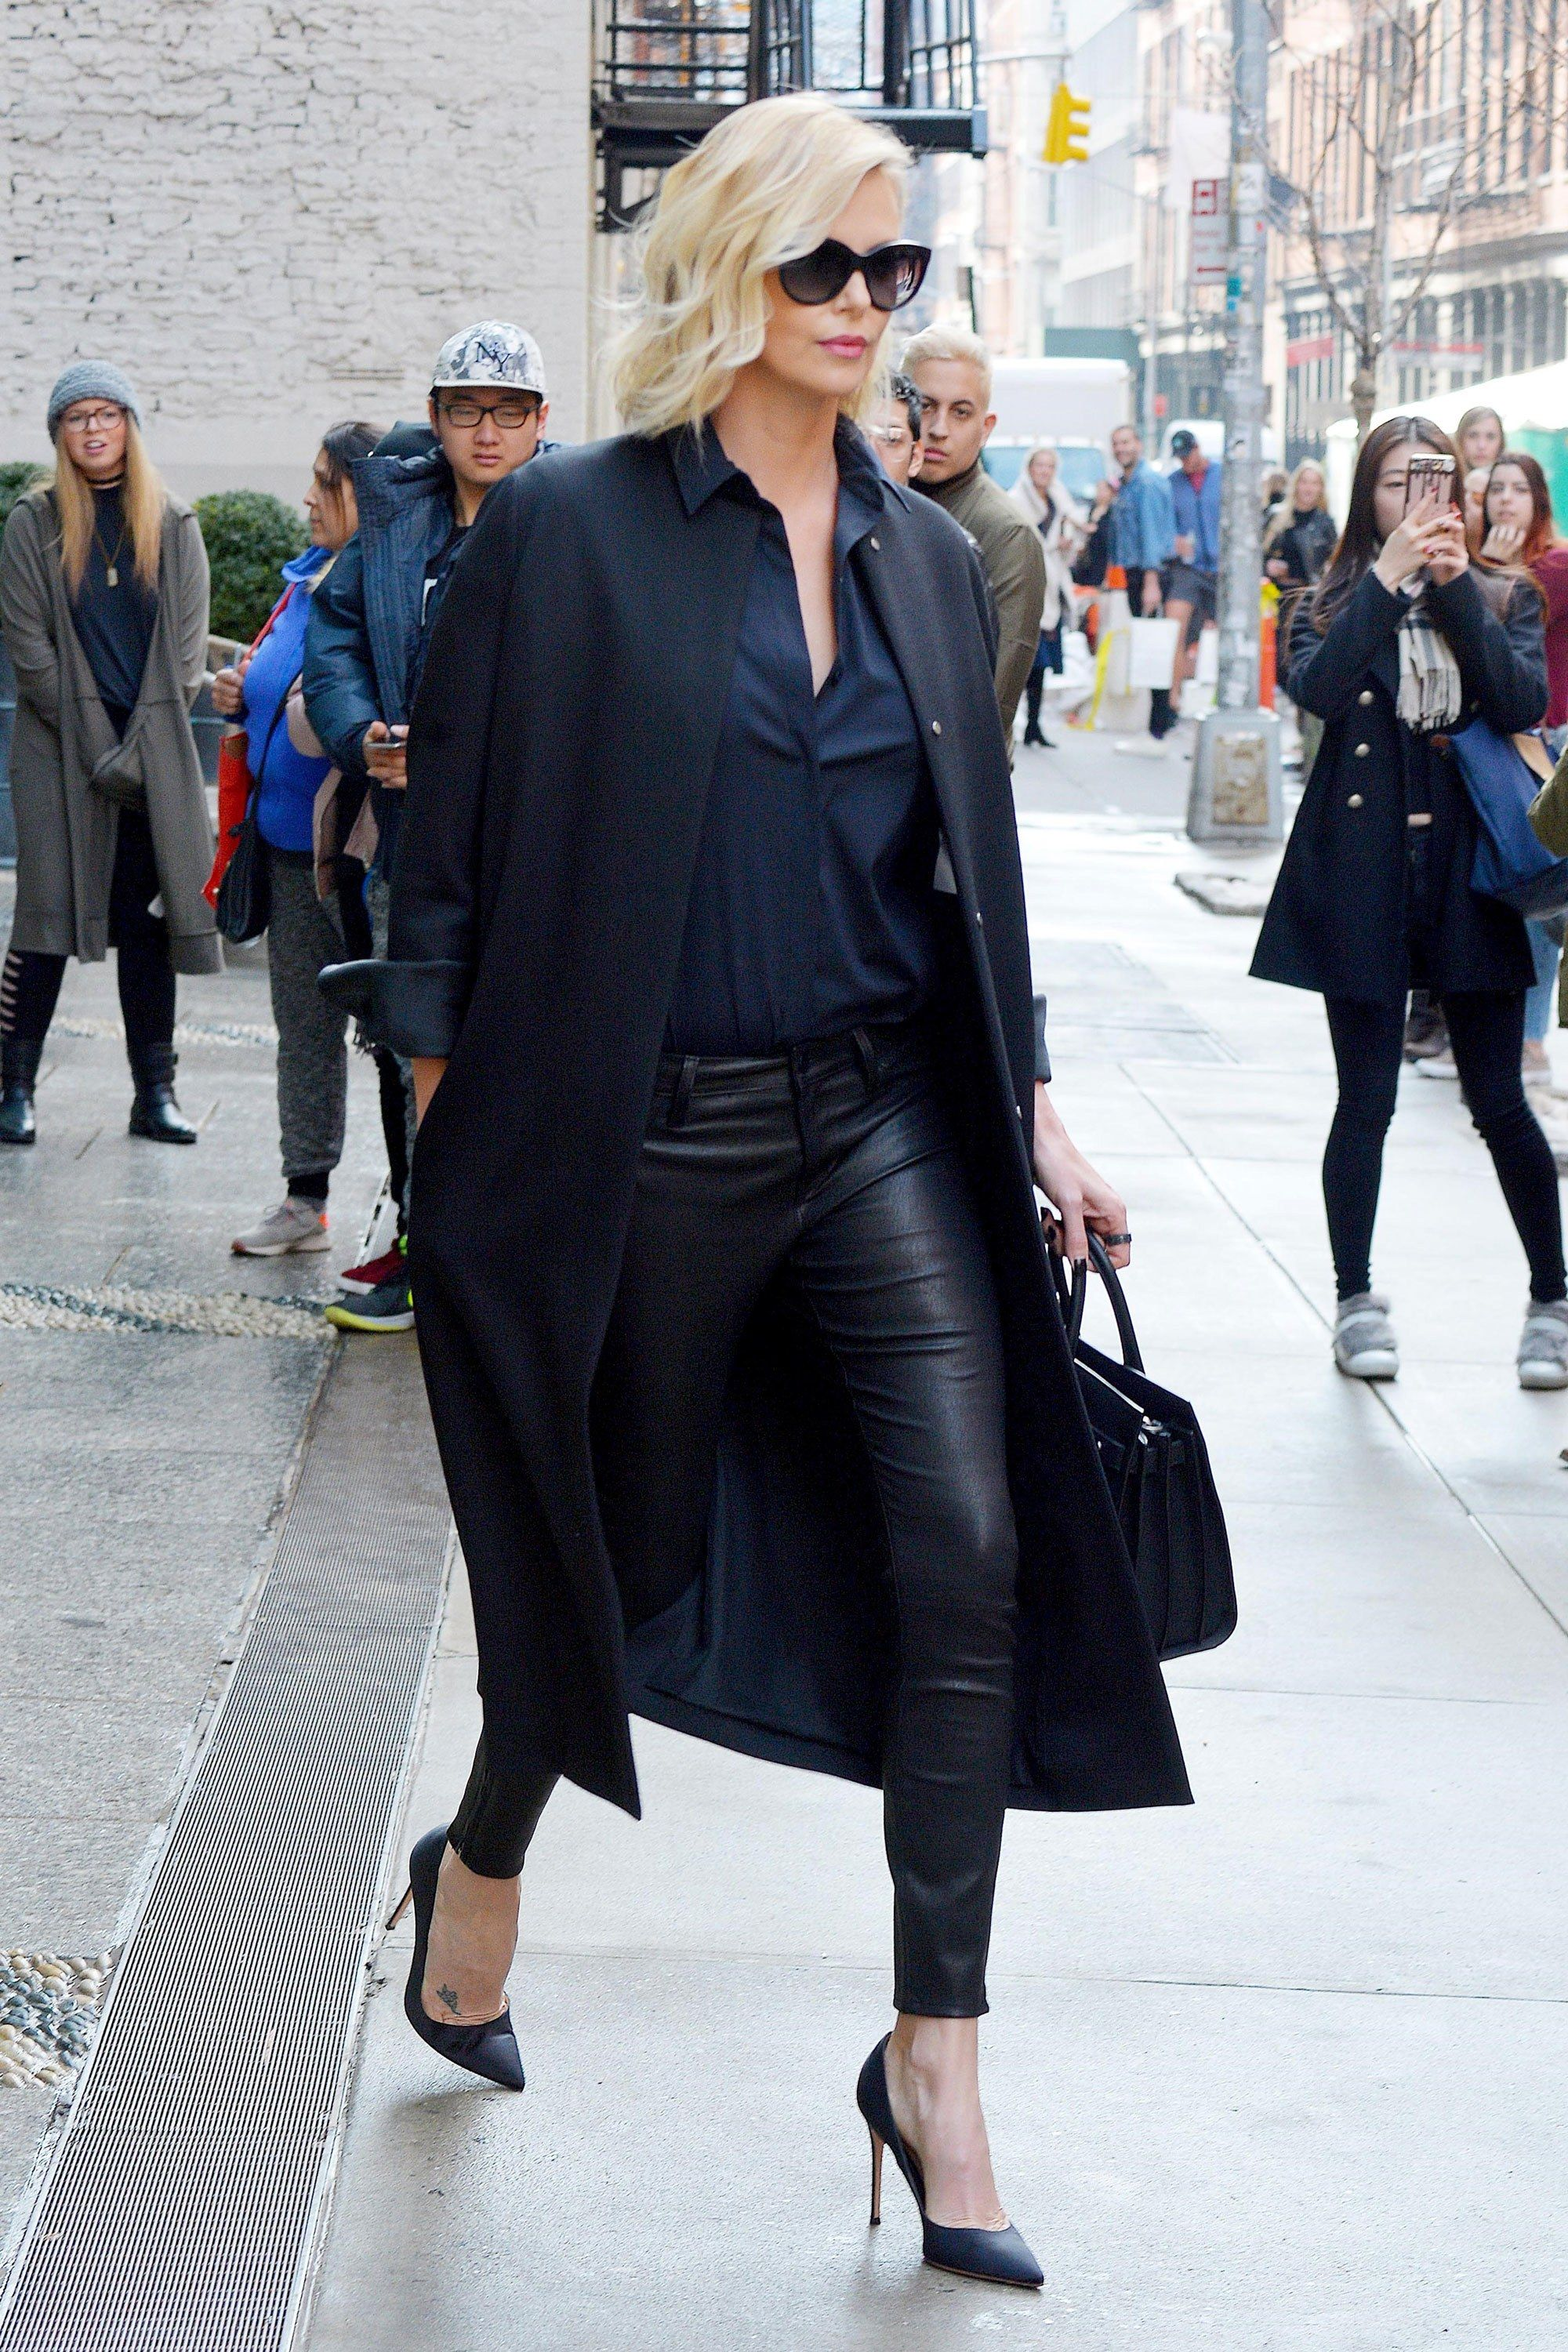 0ec00044df0d Charlize Theron Is Giving Kendall Jenner a Run for Her Money in These  Leather Pants - February 2017